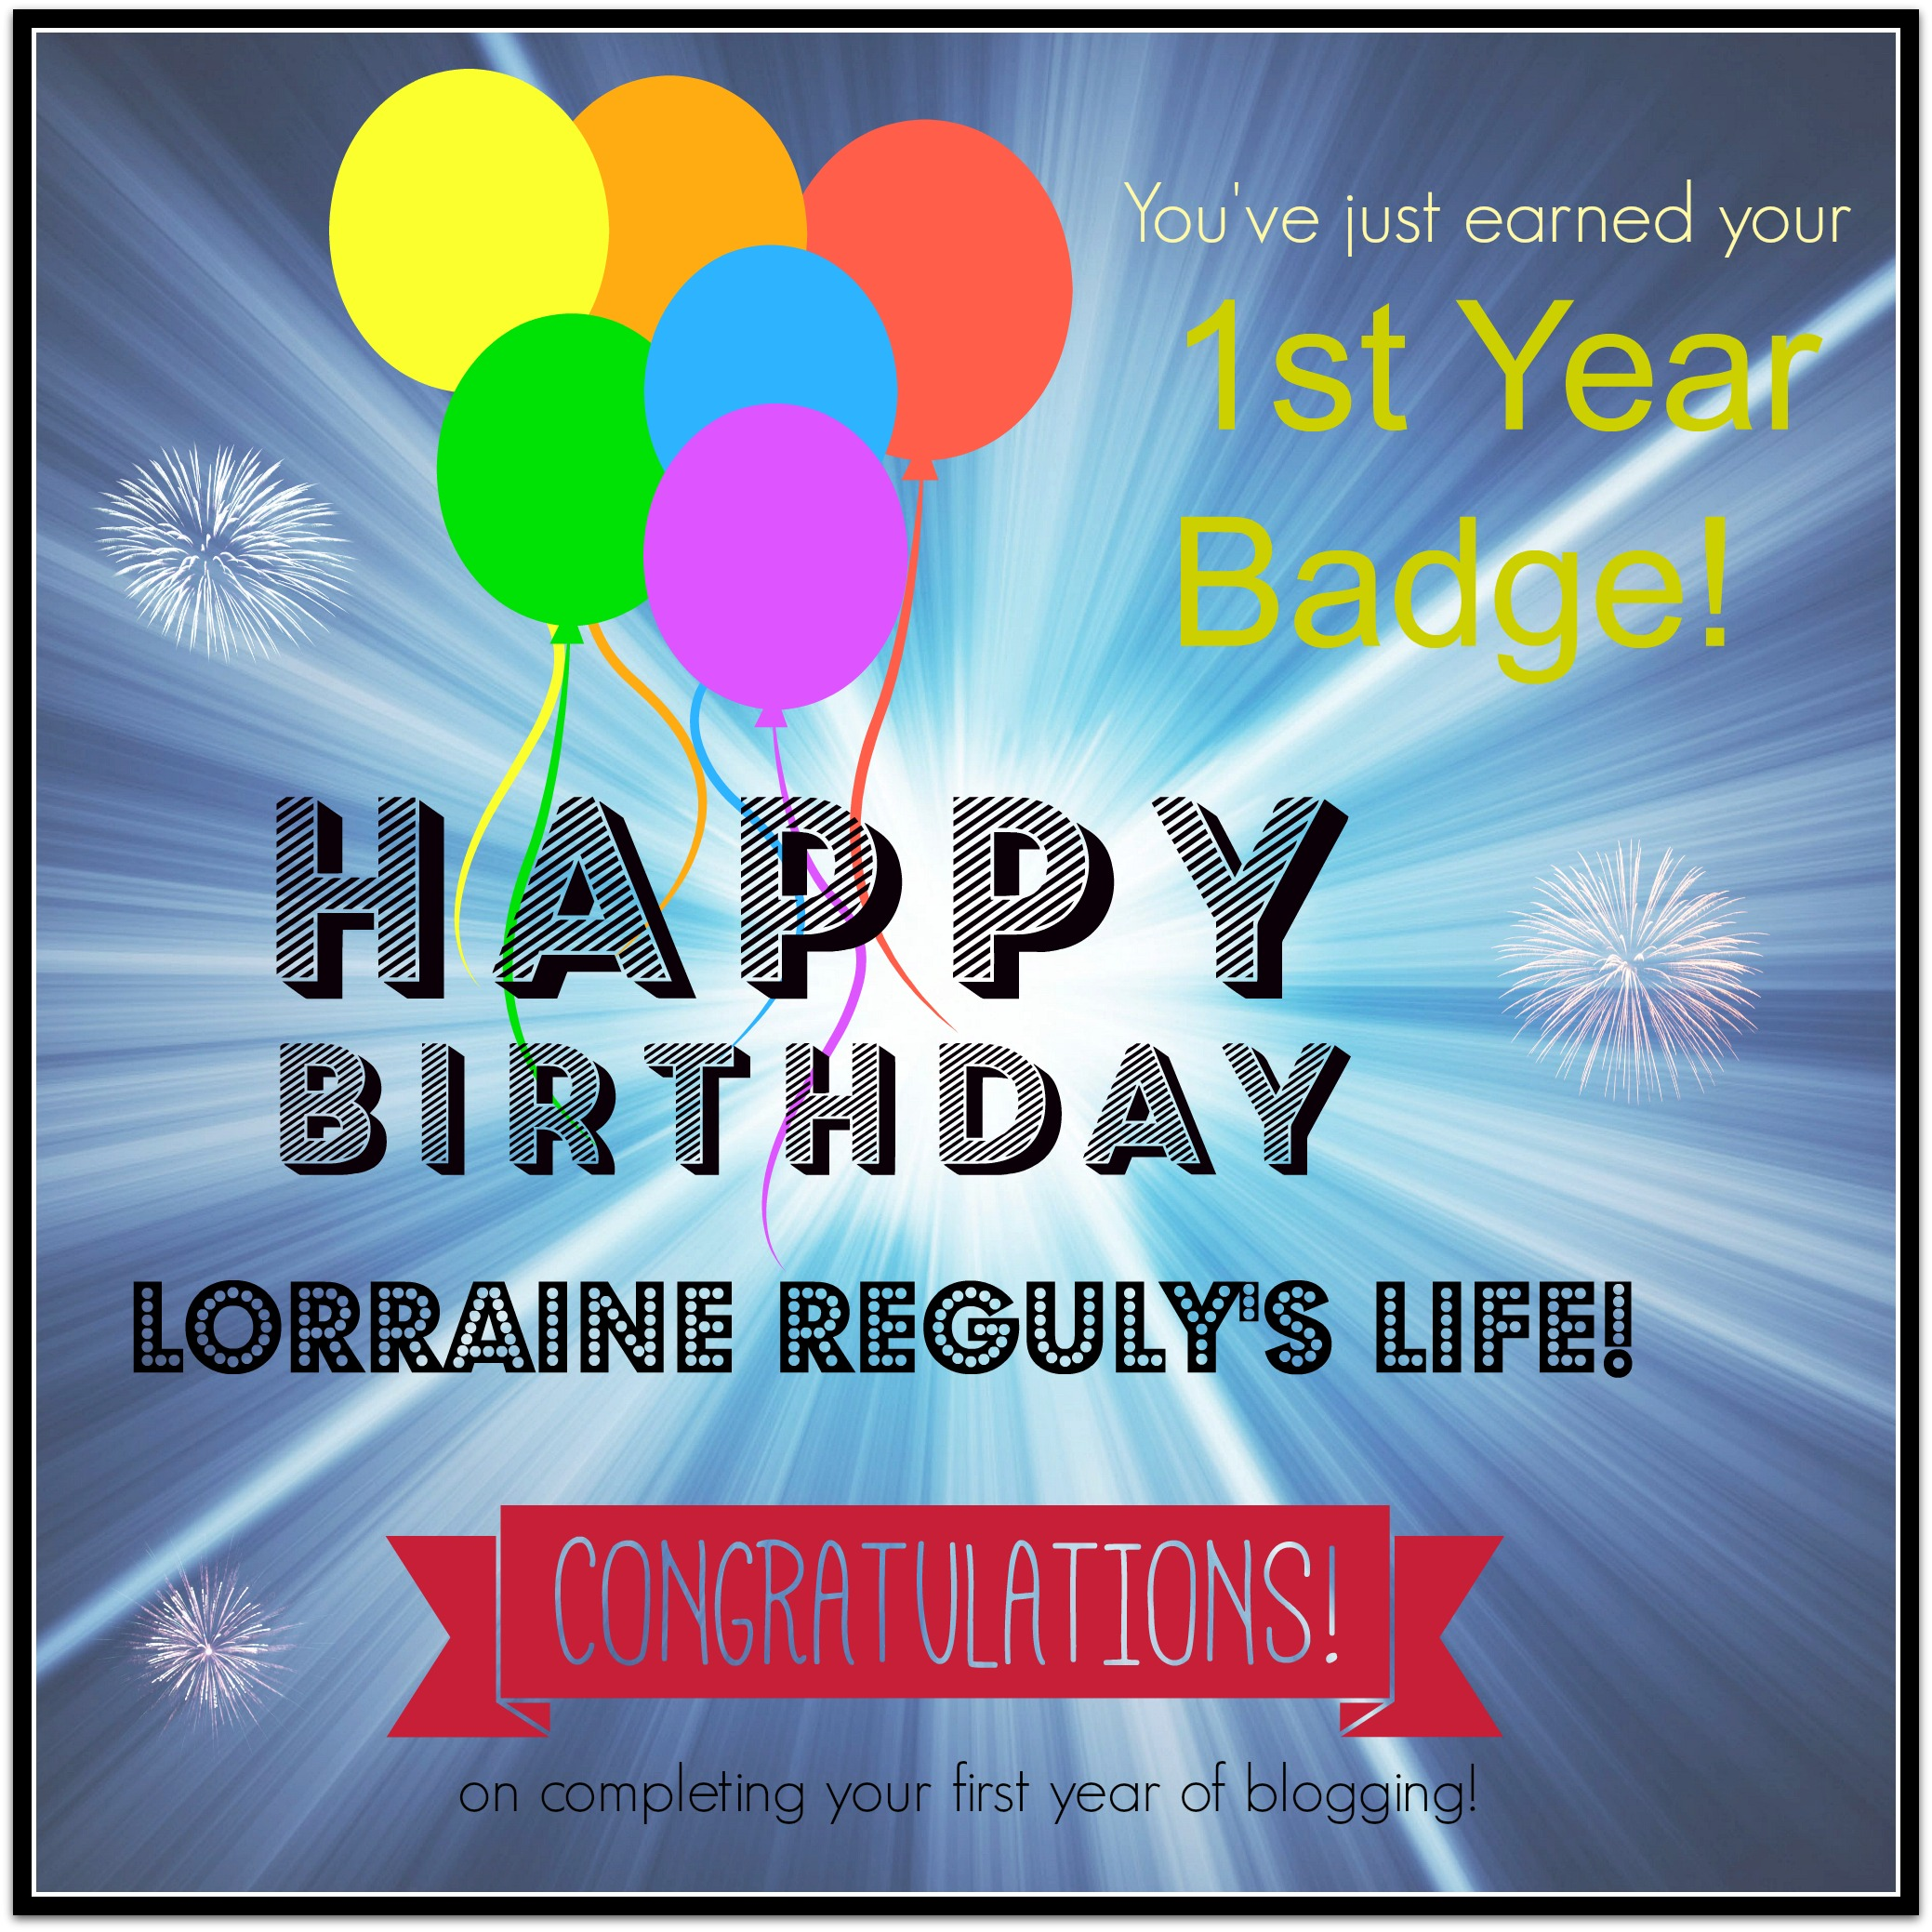 one year blogging badge